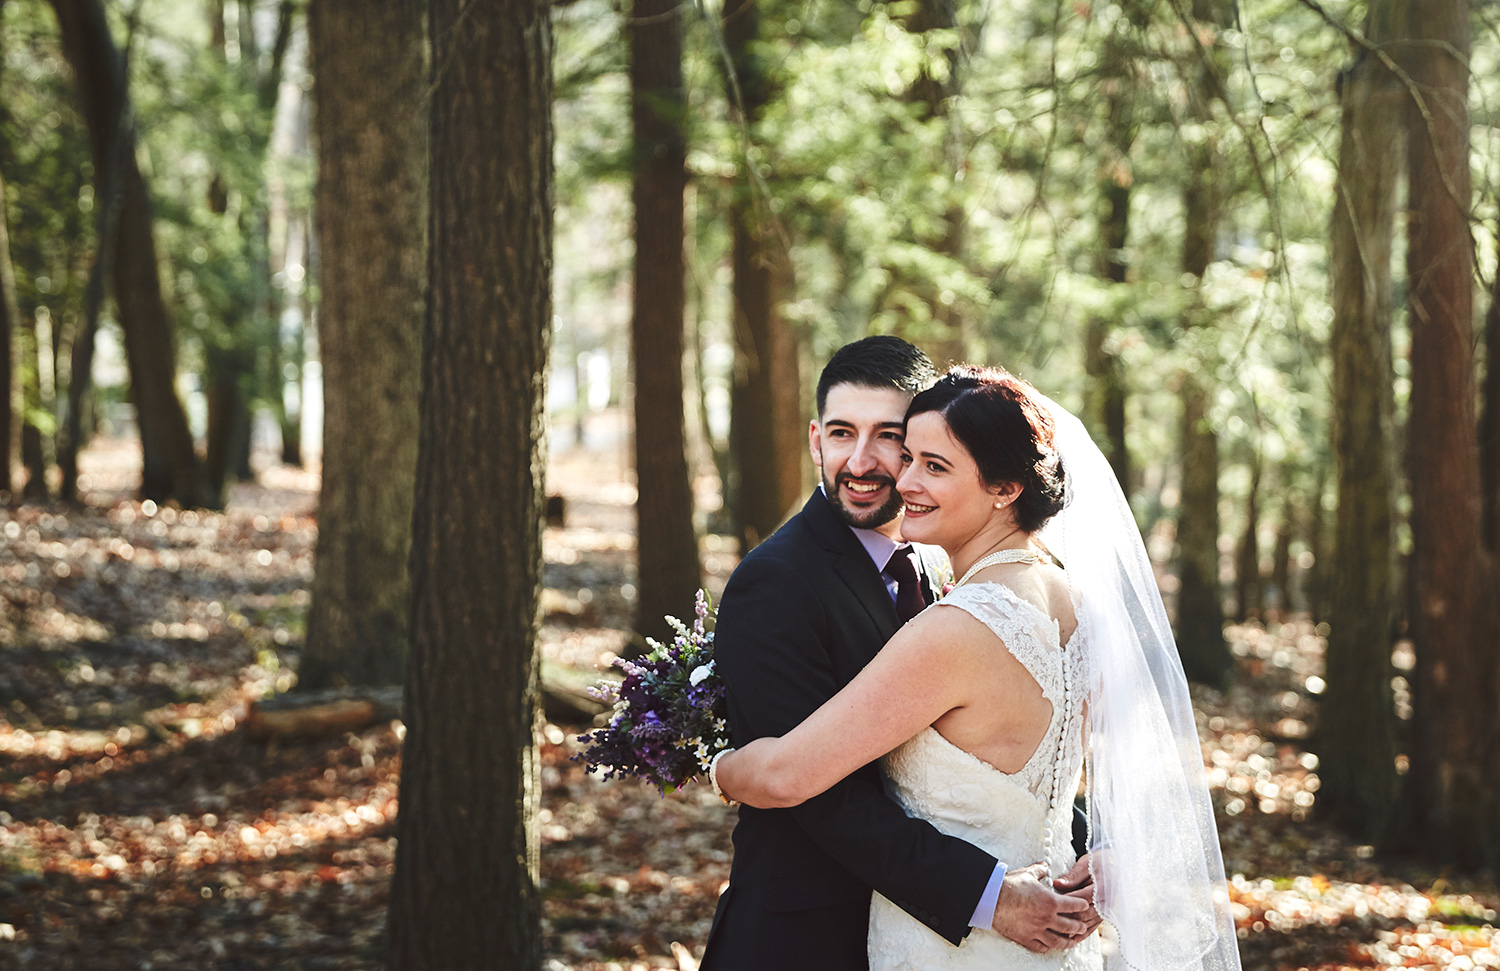 161119_ArrowParkLake&LodgeWedding_By_BriJohnsonWeddings_0070.jpg